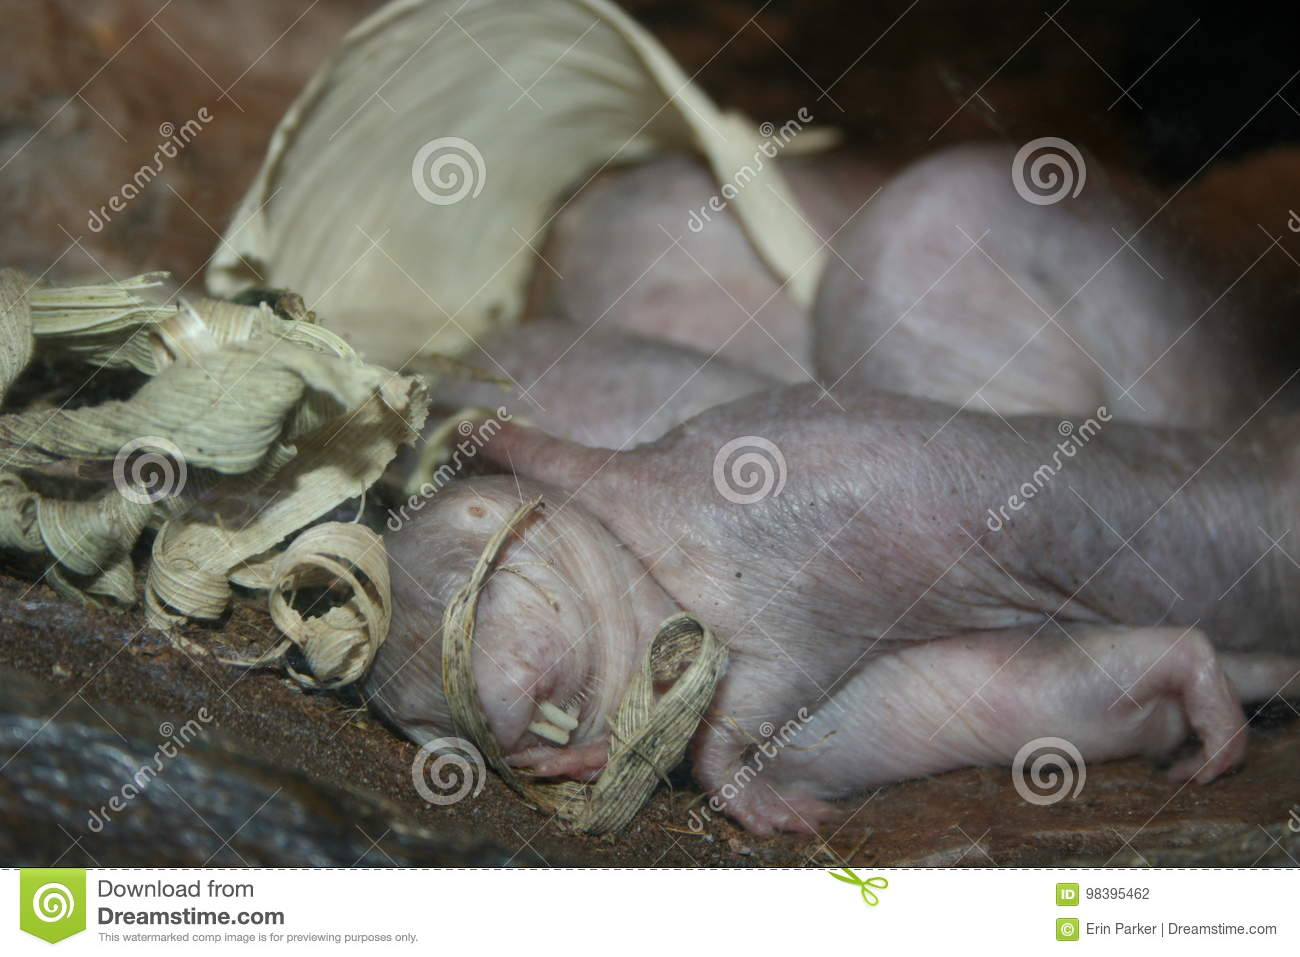 Mole Rat Stock Photo Image Of Family Animal Baby Micro 98395462